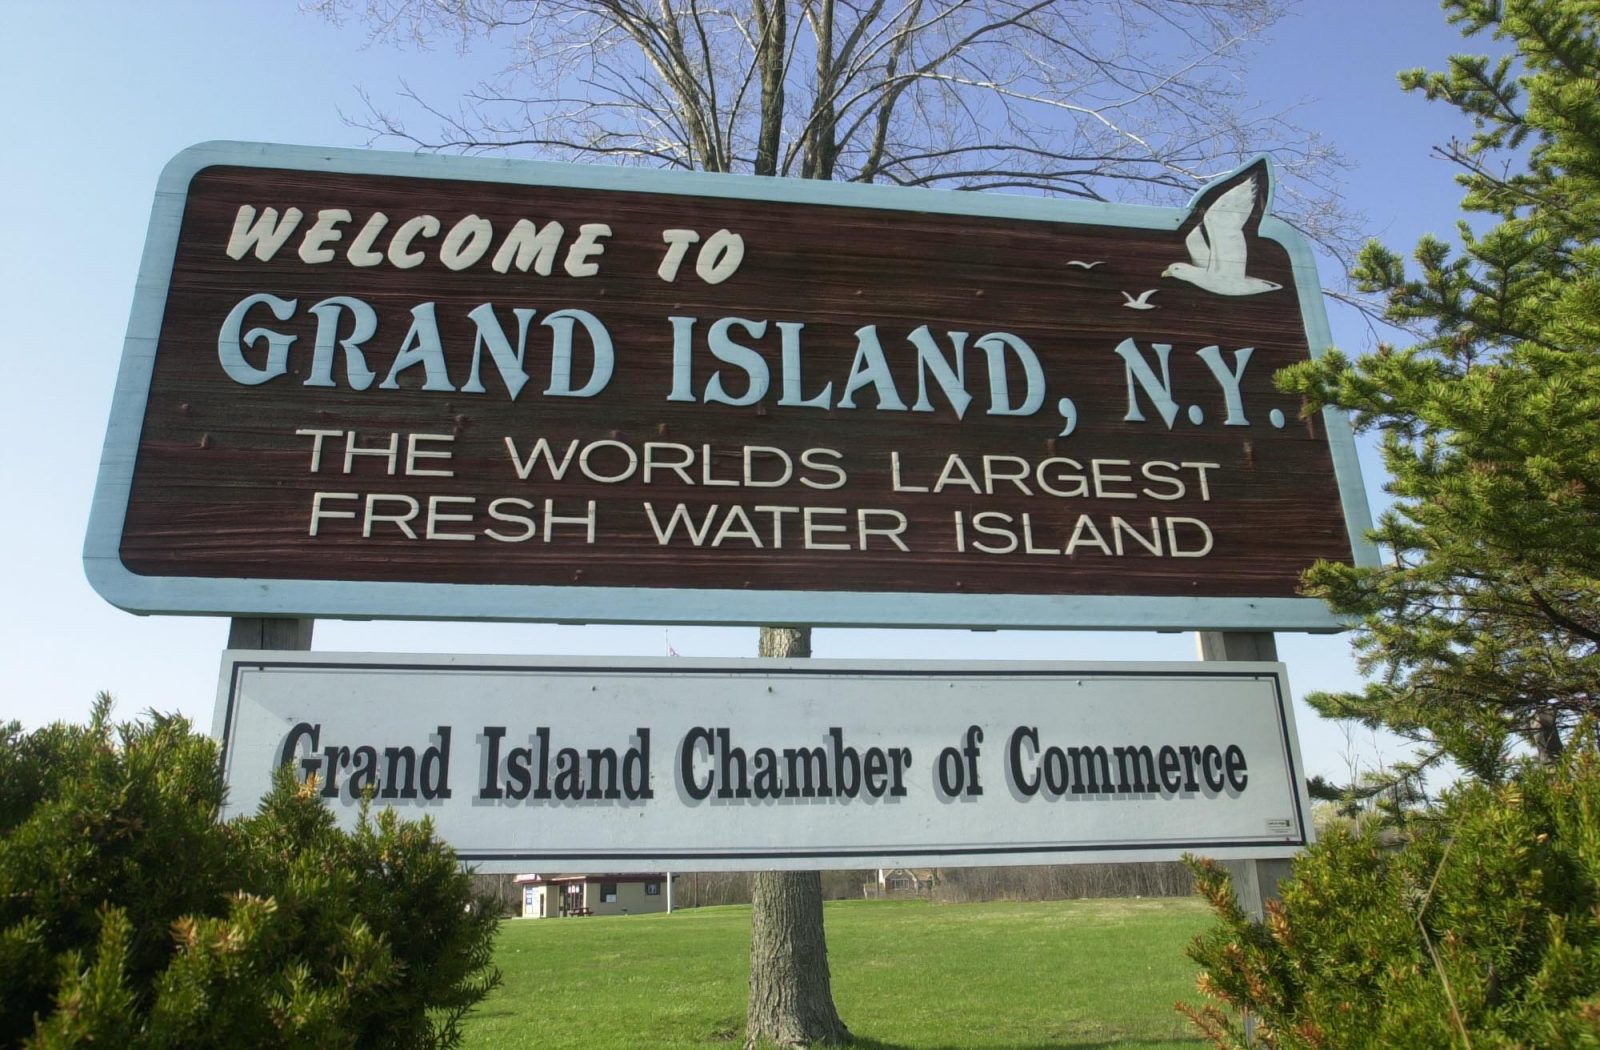 DA investigating possible theft of $116,000 by former Grand Island employee